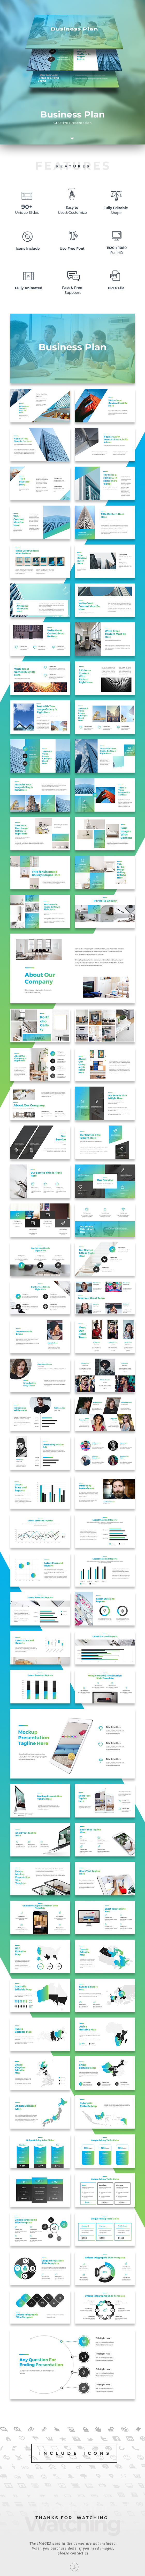 Business plan powerpoint template by thinkerbyte graphicriver business plan powerpoint template finance powerpoint templates wajeb Image collections